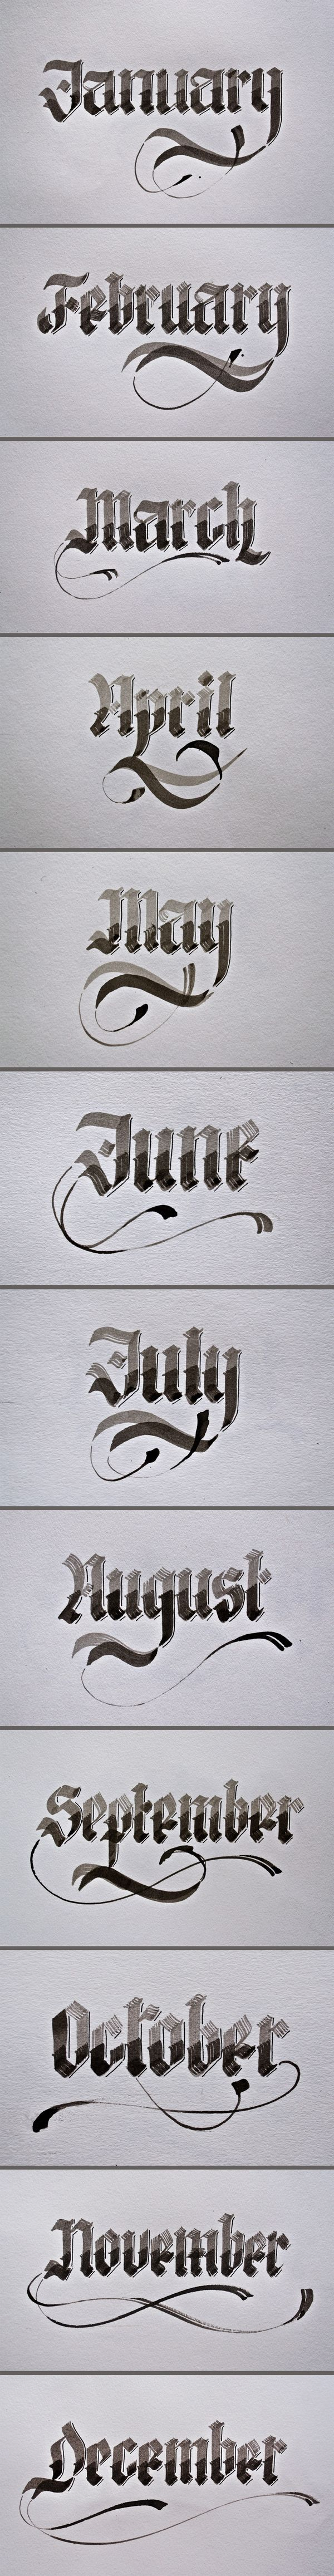 Calligraphy by Renato Molnar, via Behance. @Frances Doyle, this made me think of you!